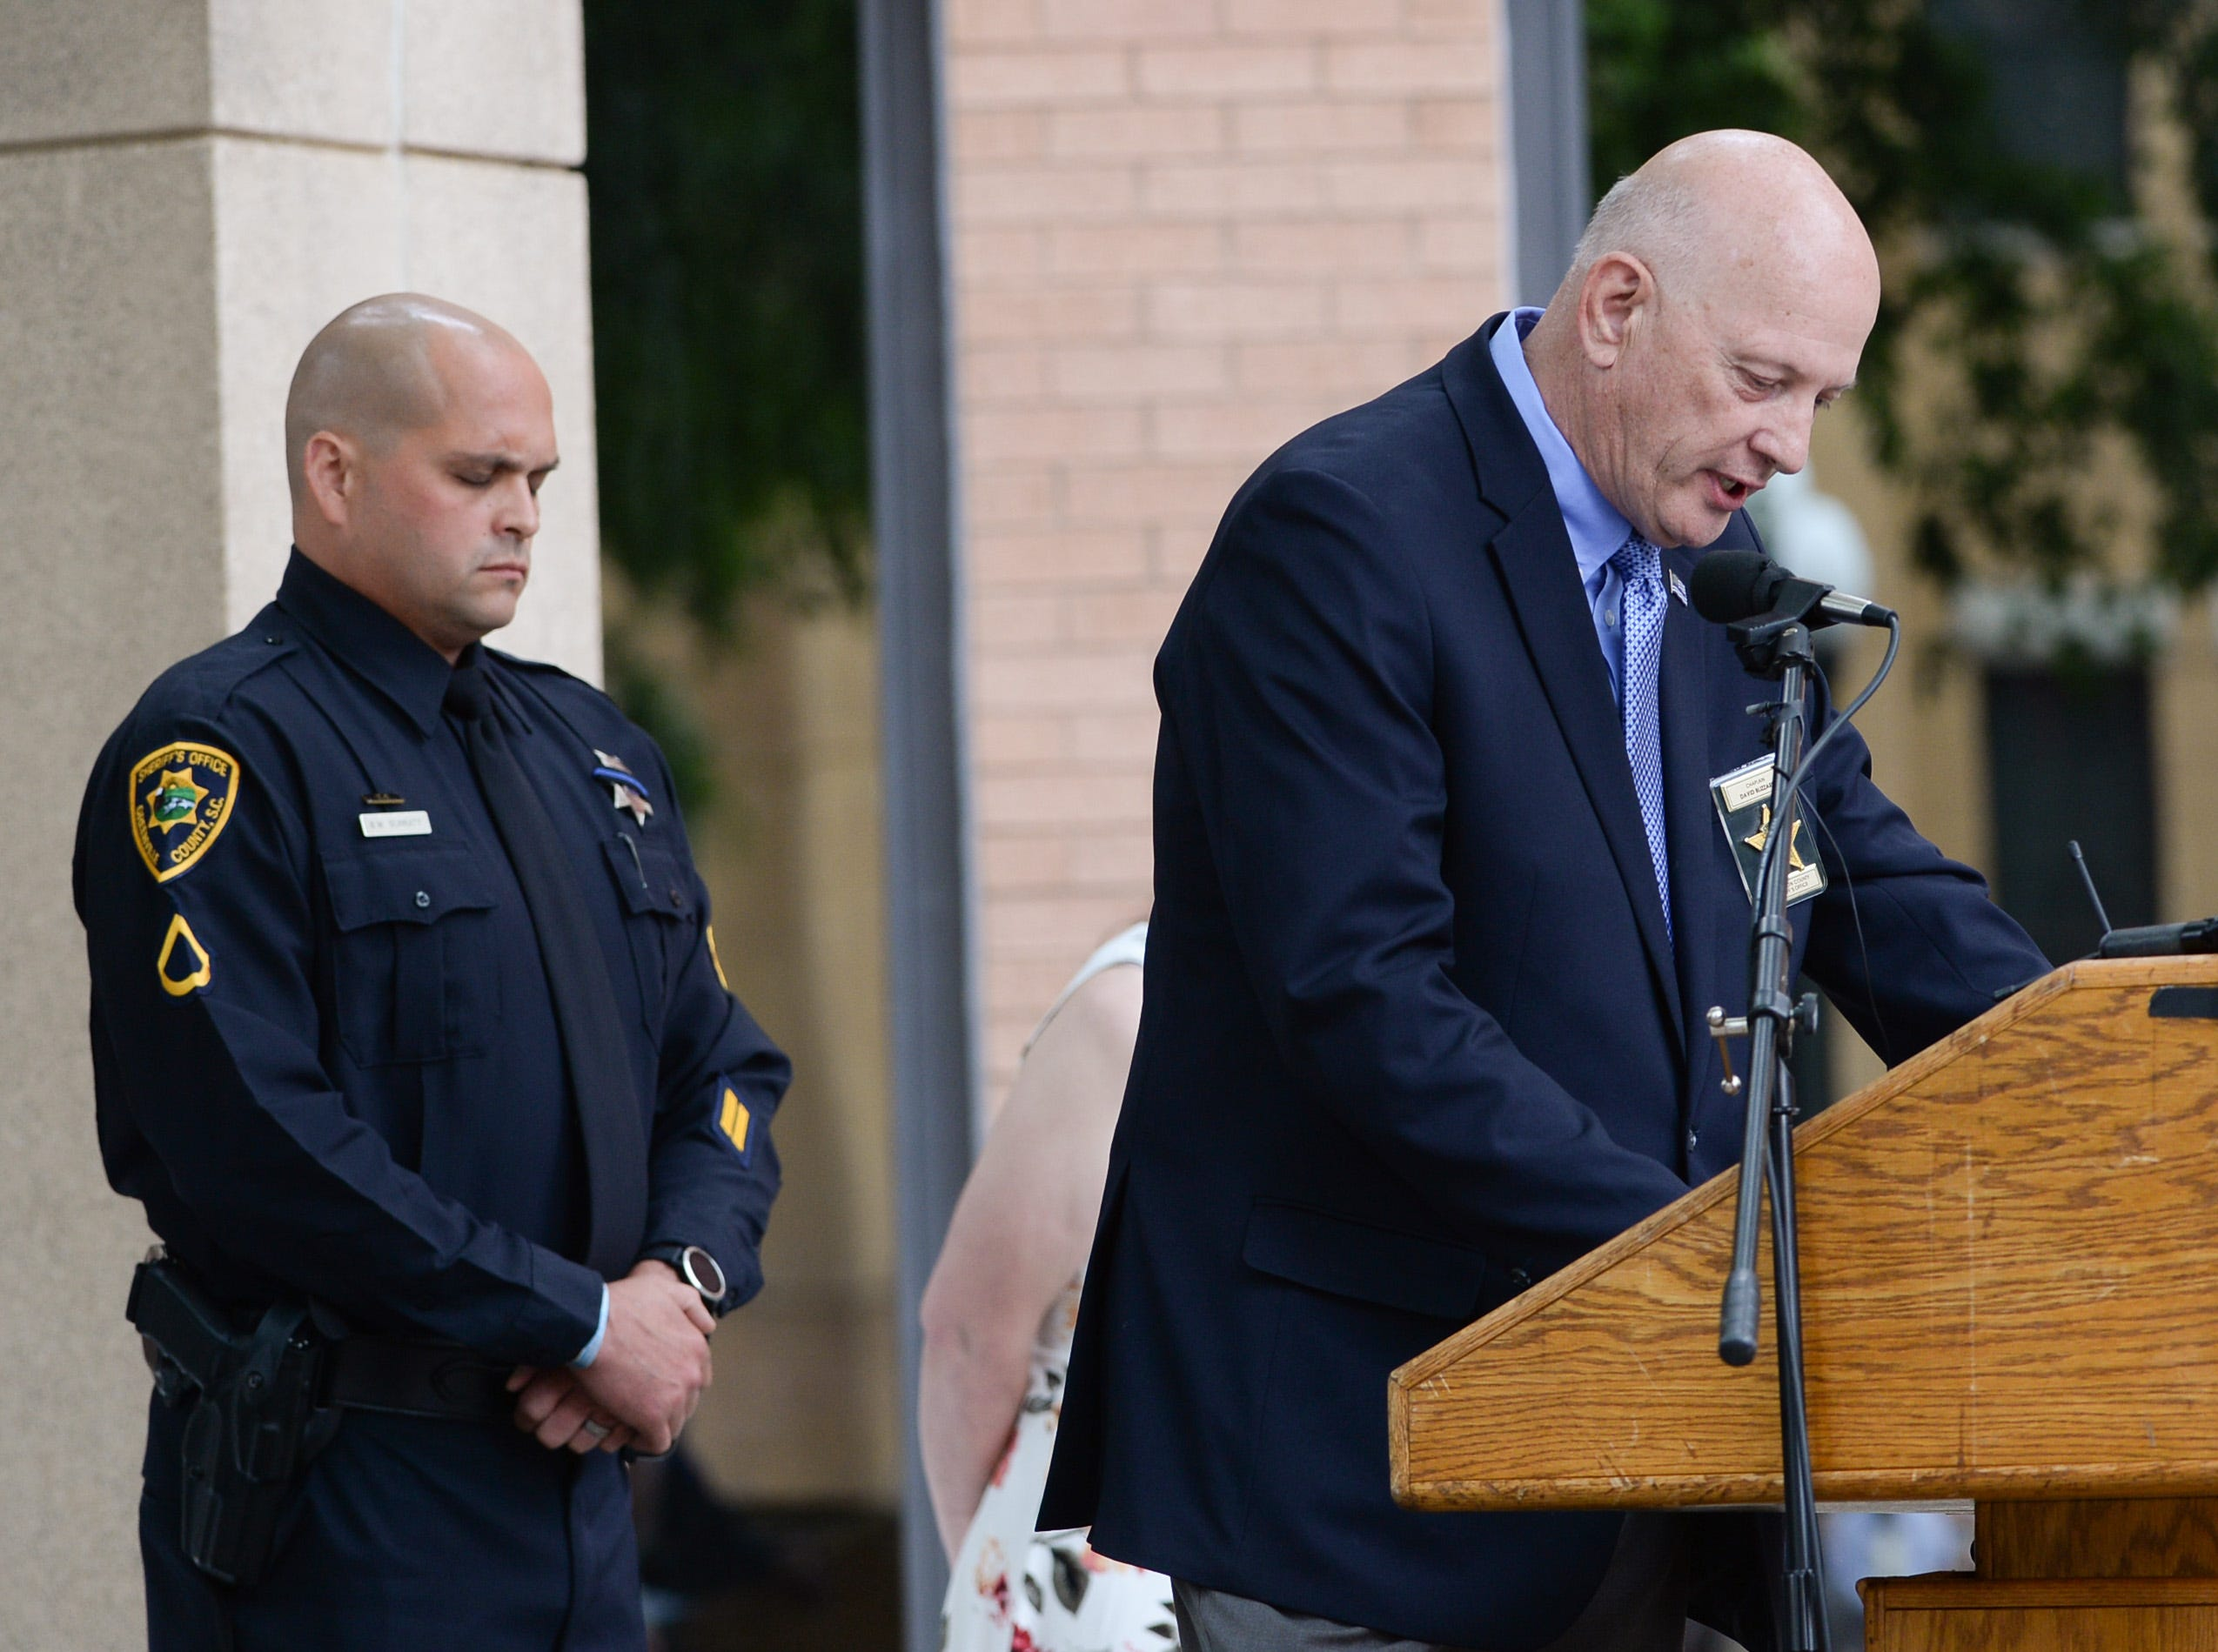 Brandon Surratt, left, of the Greenville Sheriff's Office, stands near Rev. David Blizzard offering the invocation during the 2019 Peace Officer Memorial Service Wednesday May 15, 2019, in front of the Anderson County courthouse. People attended to help honor the lives of officers lost in the line of duty. Surratt, a former Anderson County Sheriff Deputy who lost his K-9 Hyco in the line of duty in 2015, spoke about serving as an officer.